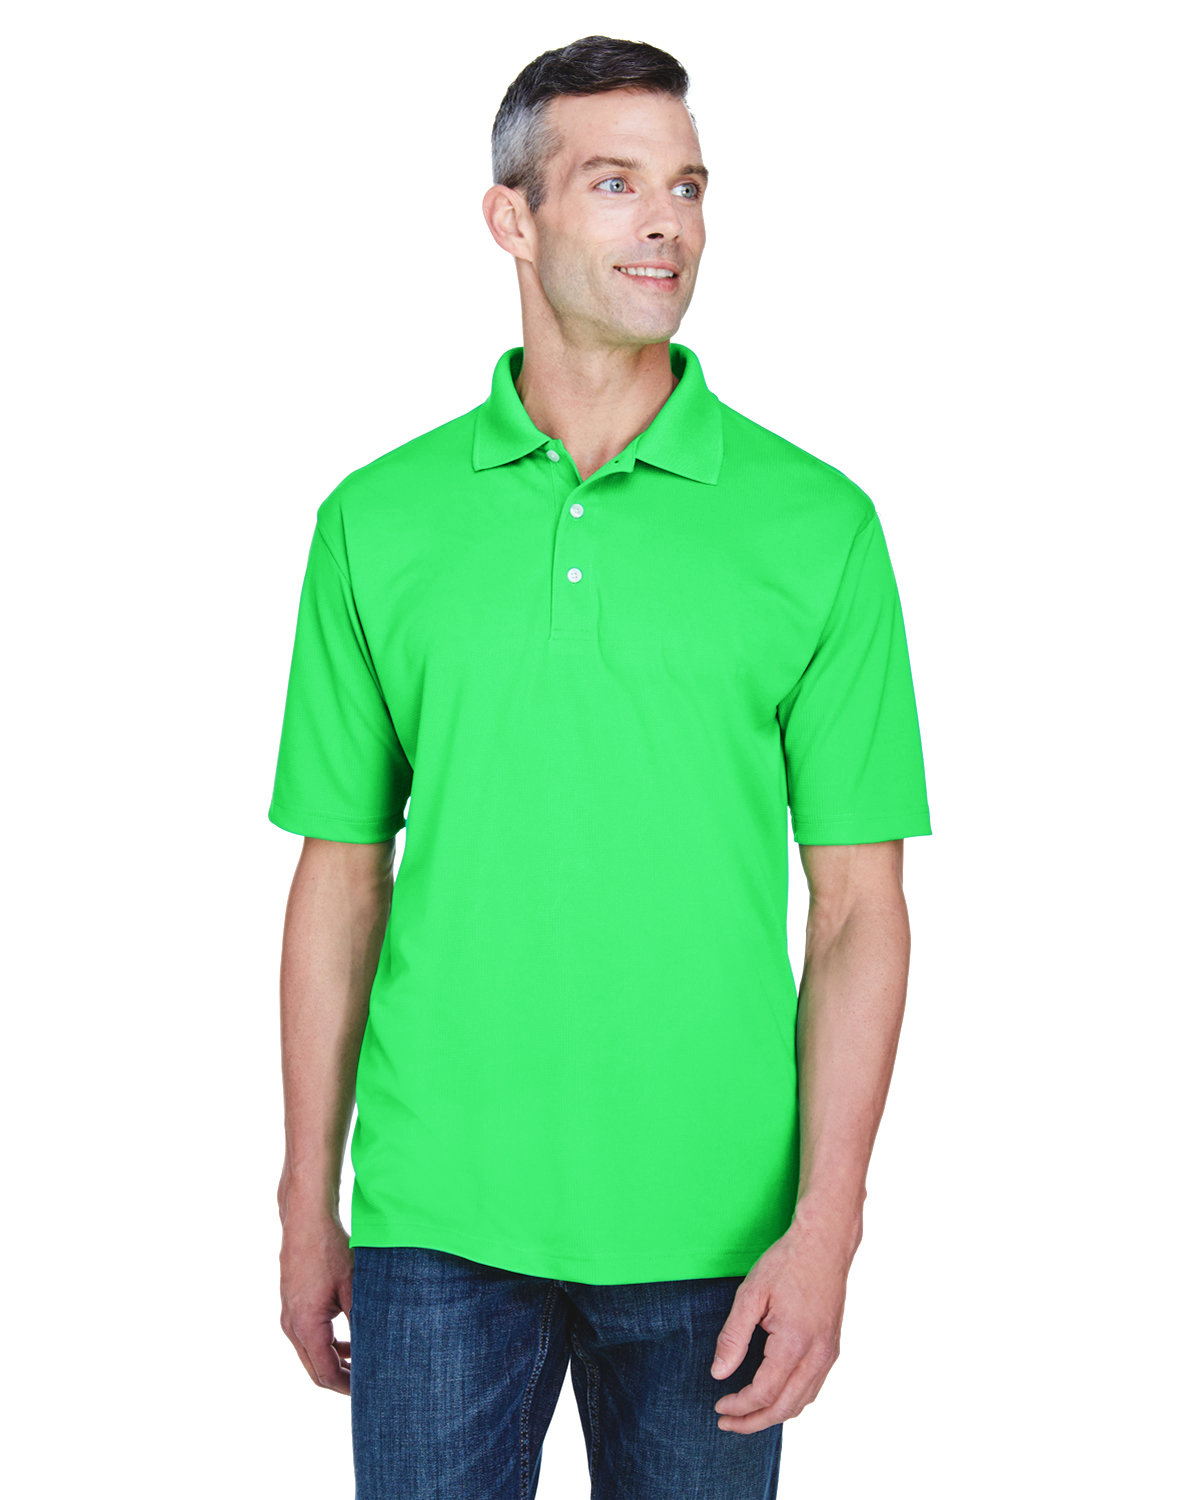 UltraClub Men's Cool & Dry Stain-Release Performance Polo COOL GREEN